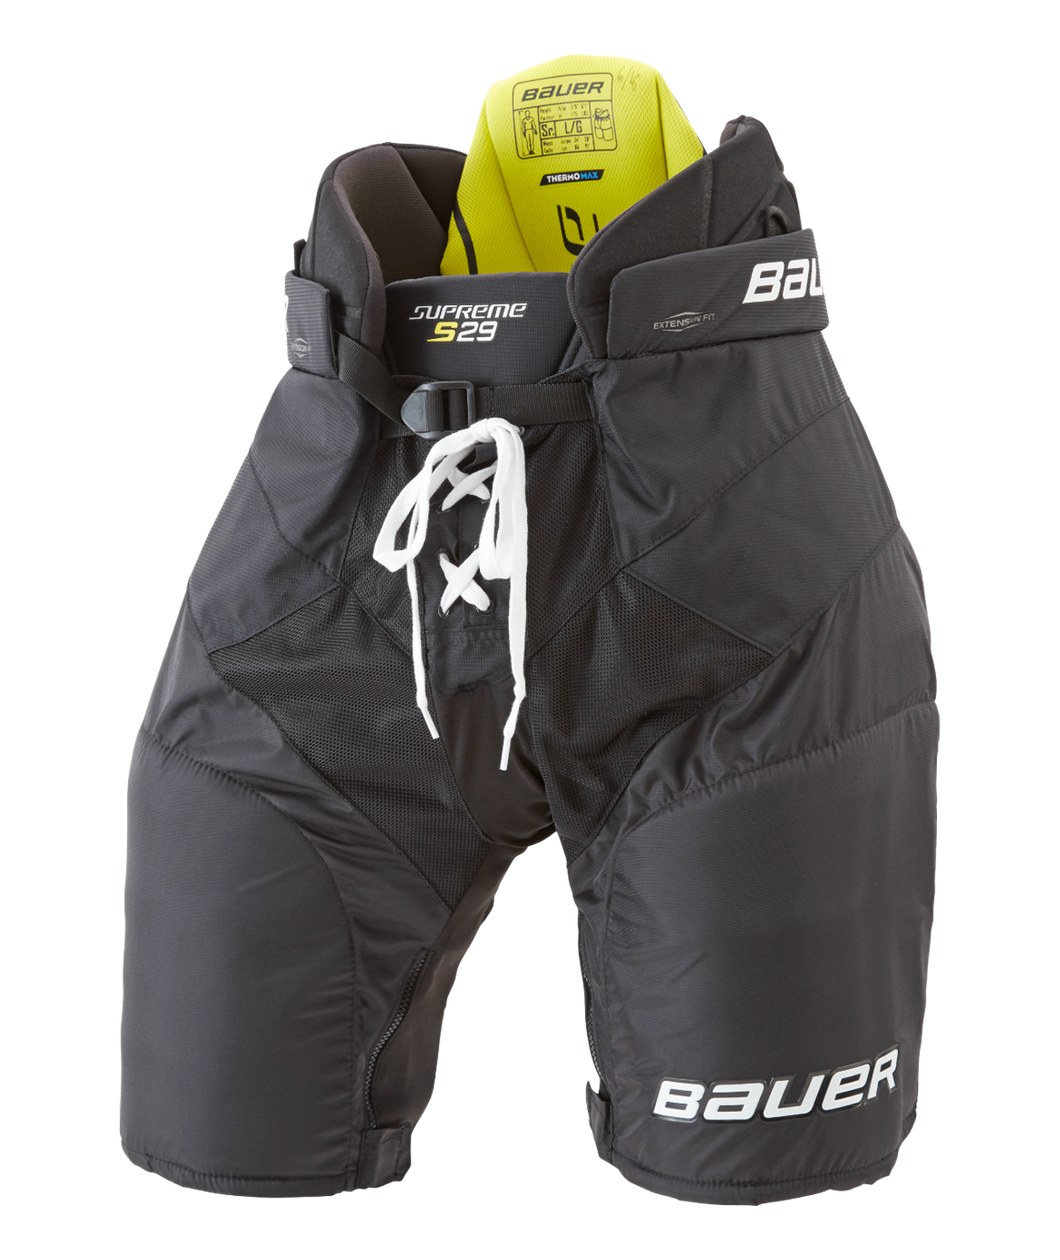 Bauer S19 SUPREME S29 Junior Hockey PANT